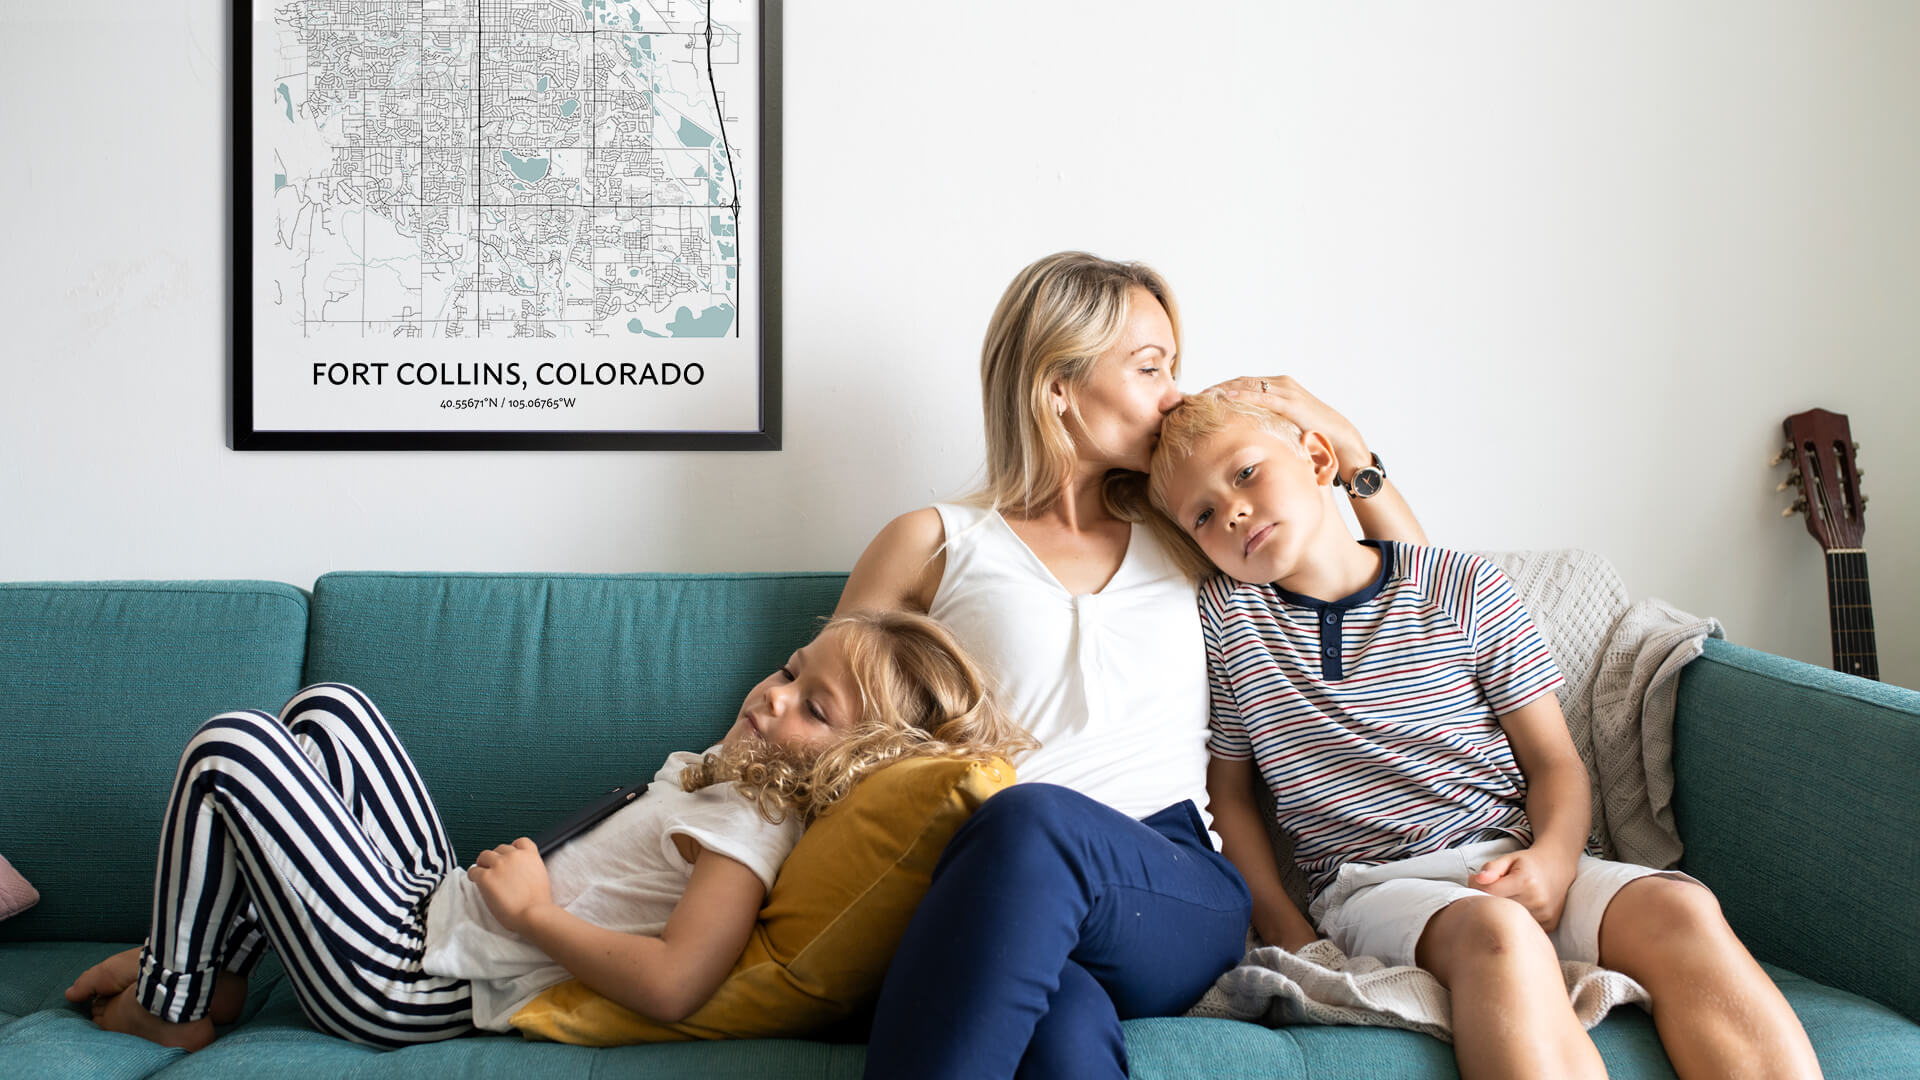 Fort Collins map poster